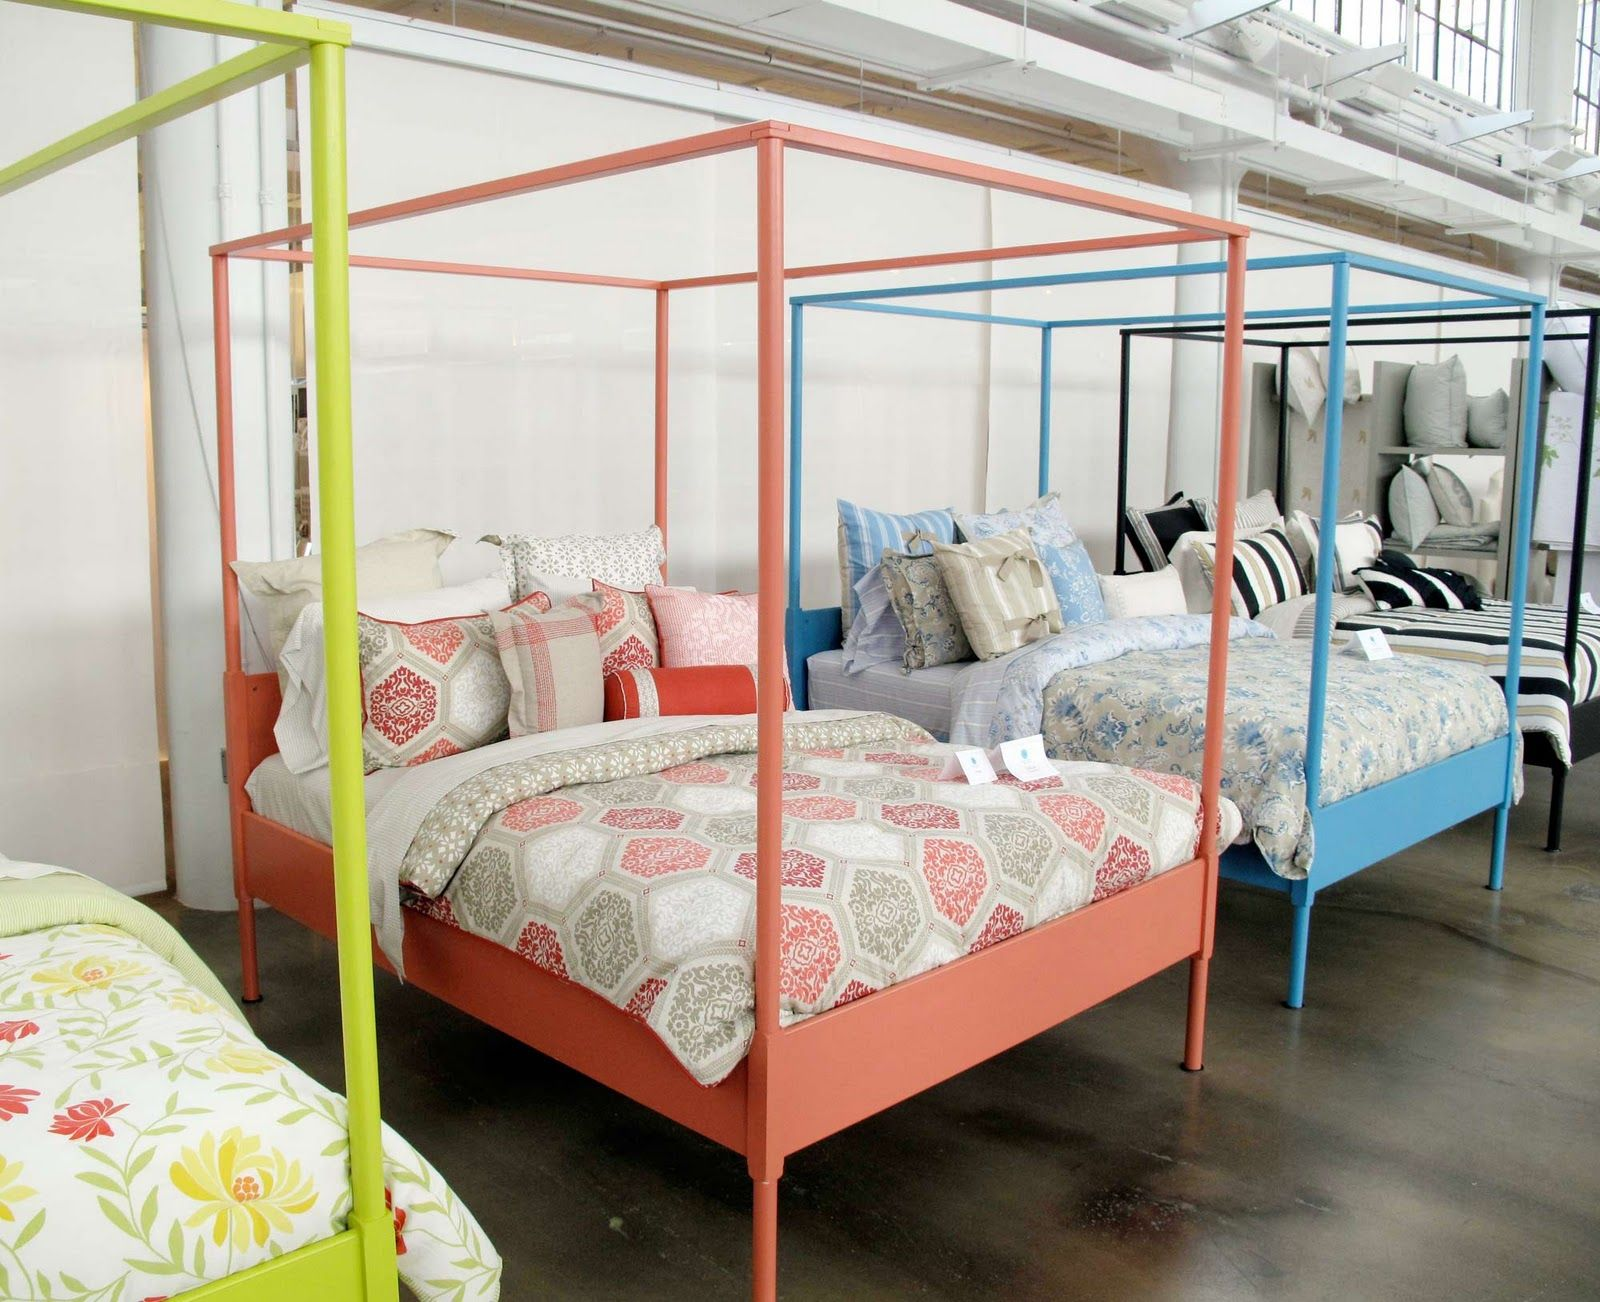 Ikea Edland Canopy Bed Painted In Different Colors Ikea Ikea